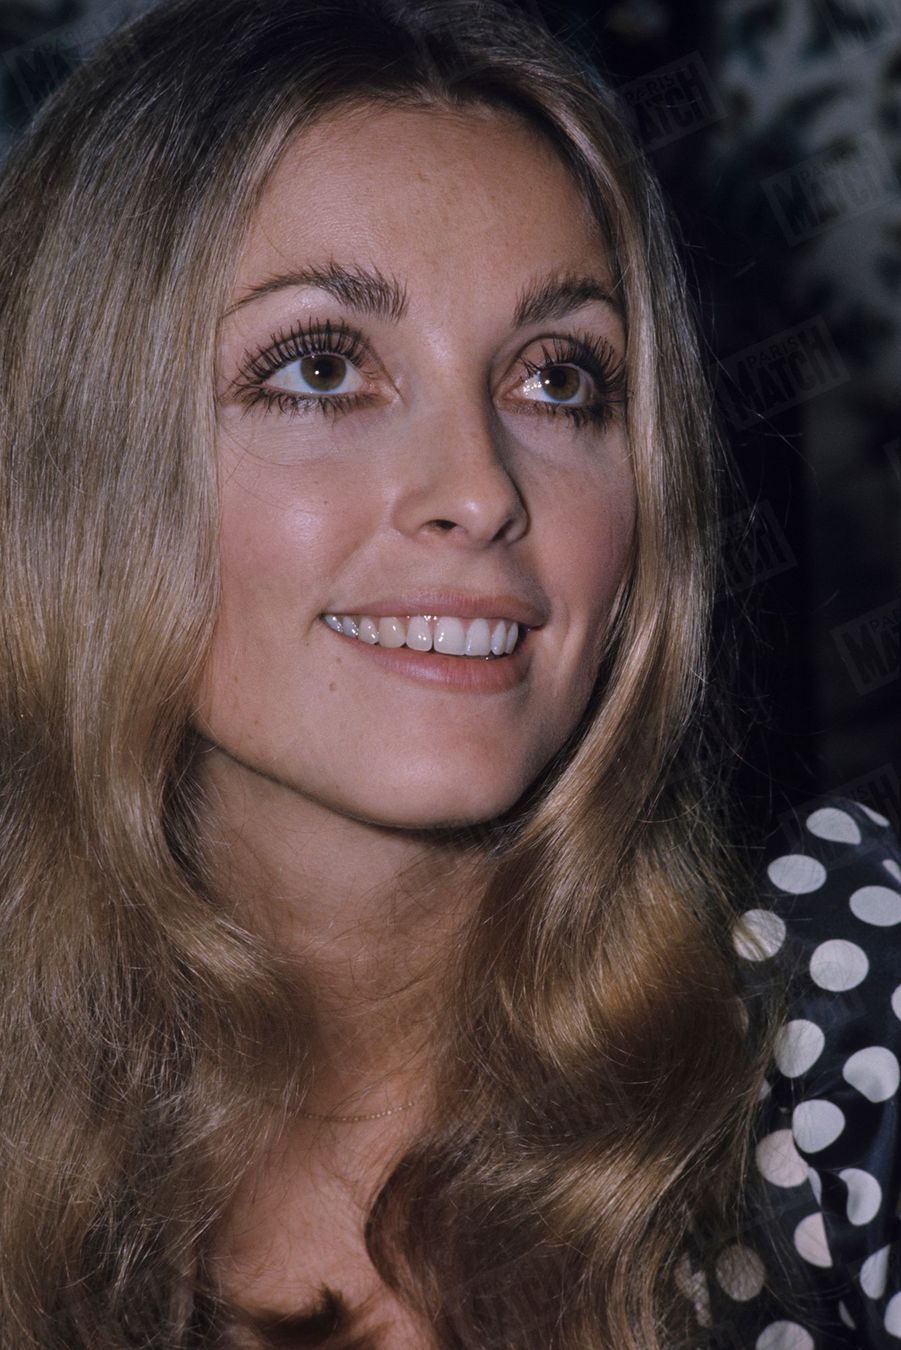 Sharon Tate à Paris, en octobre 1968.